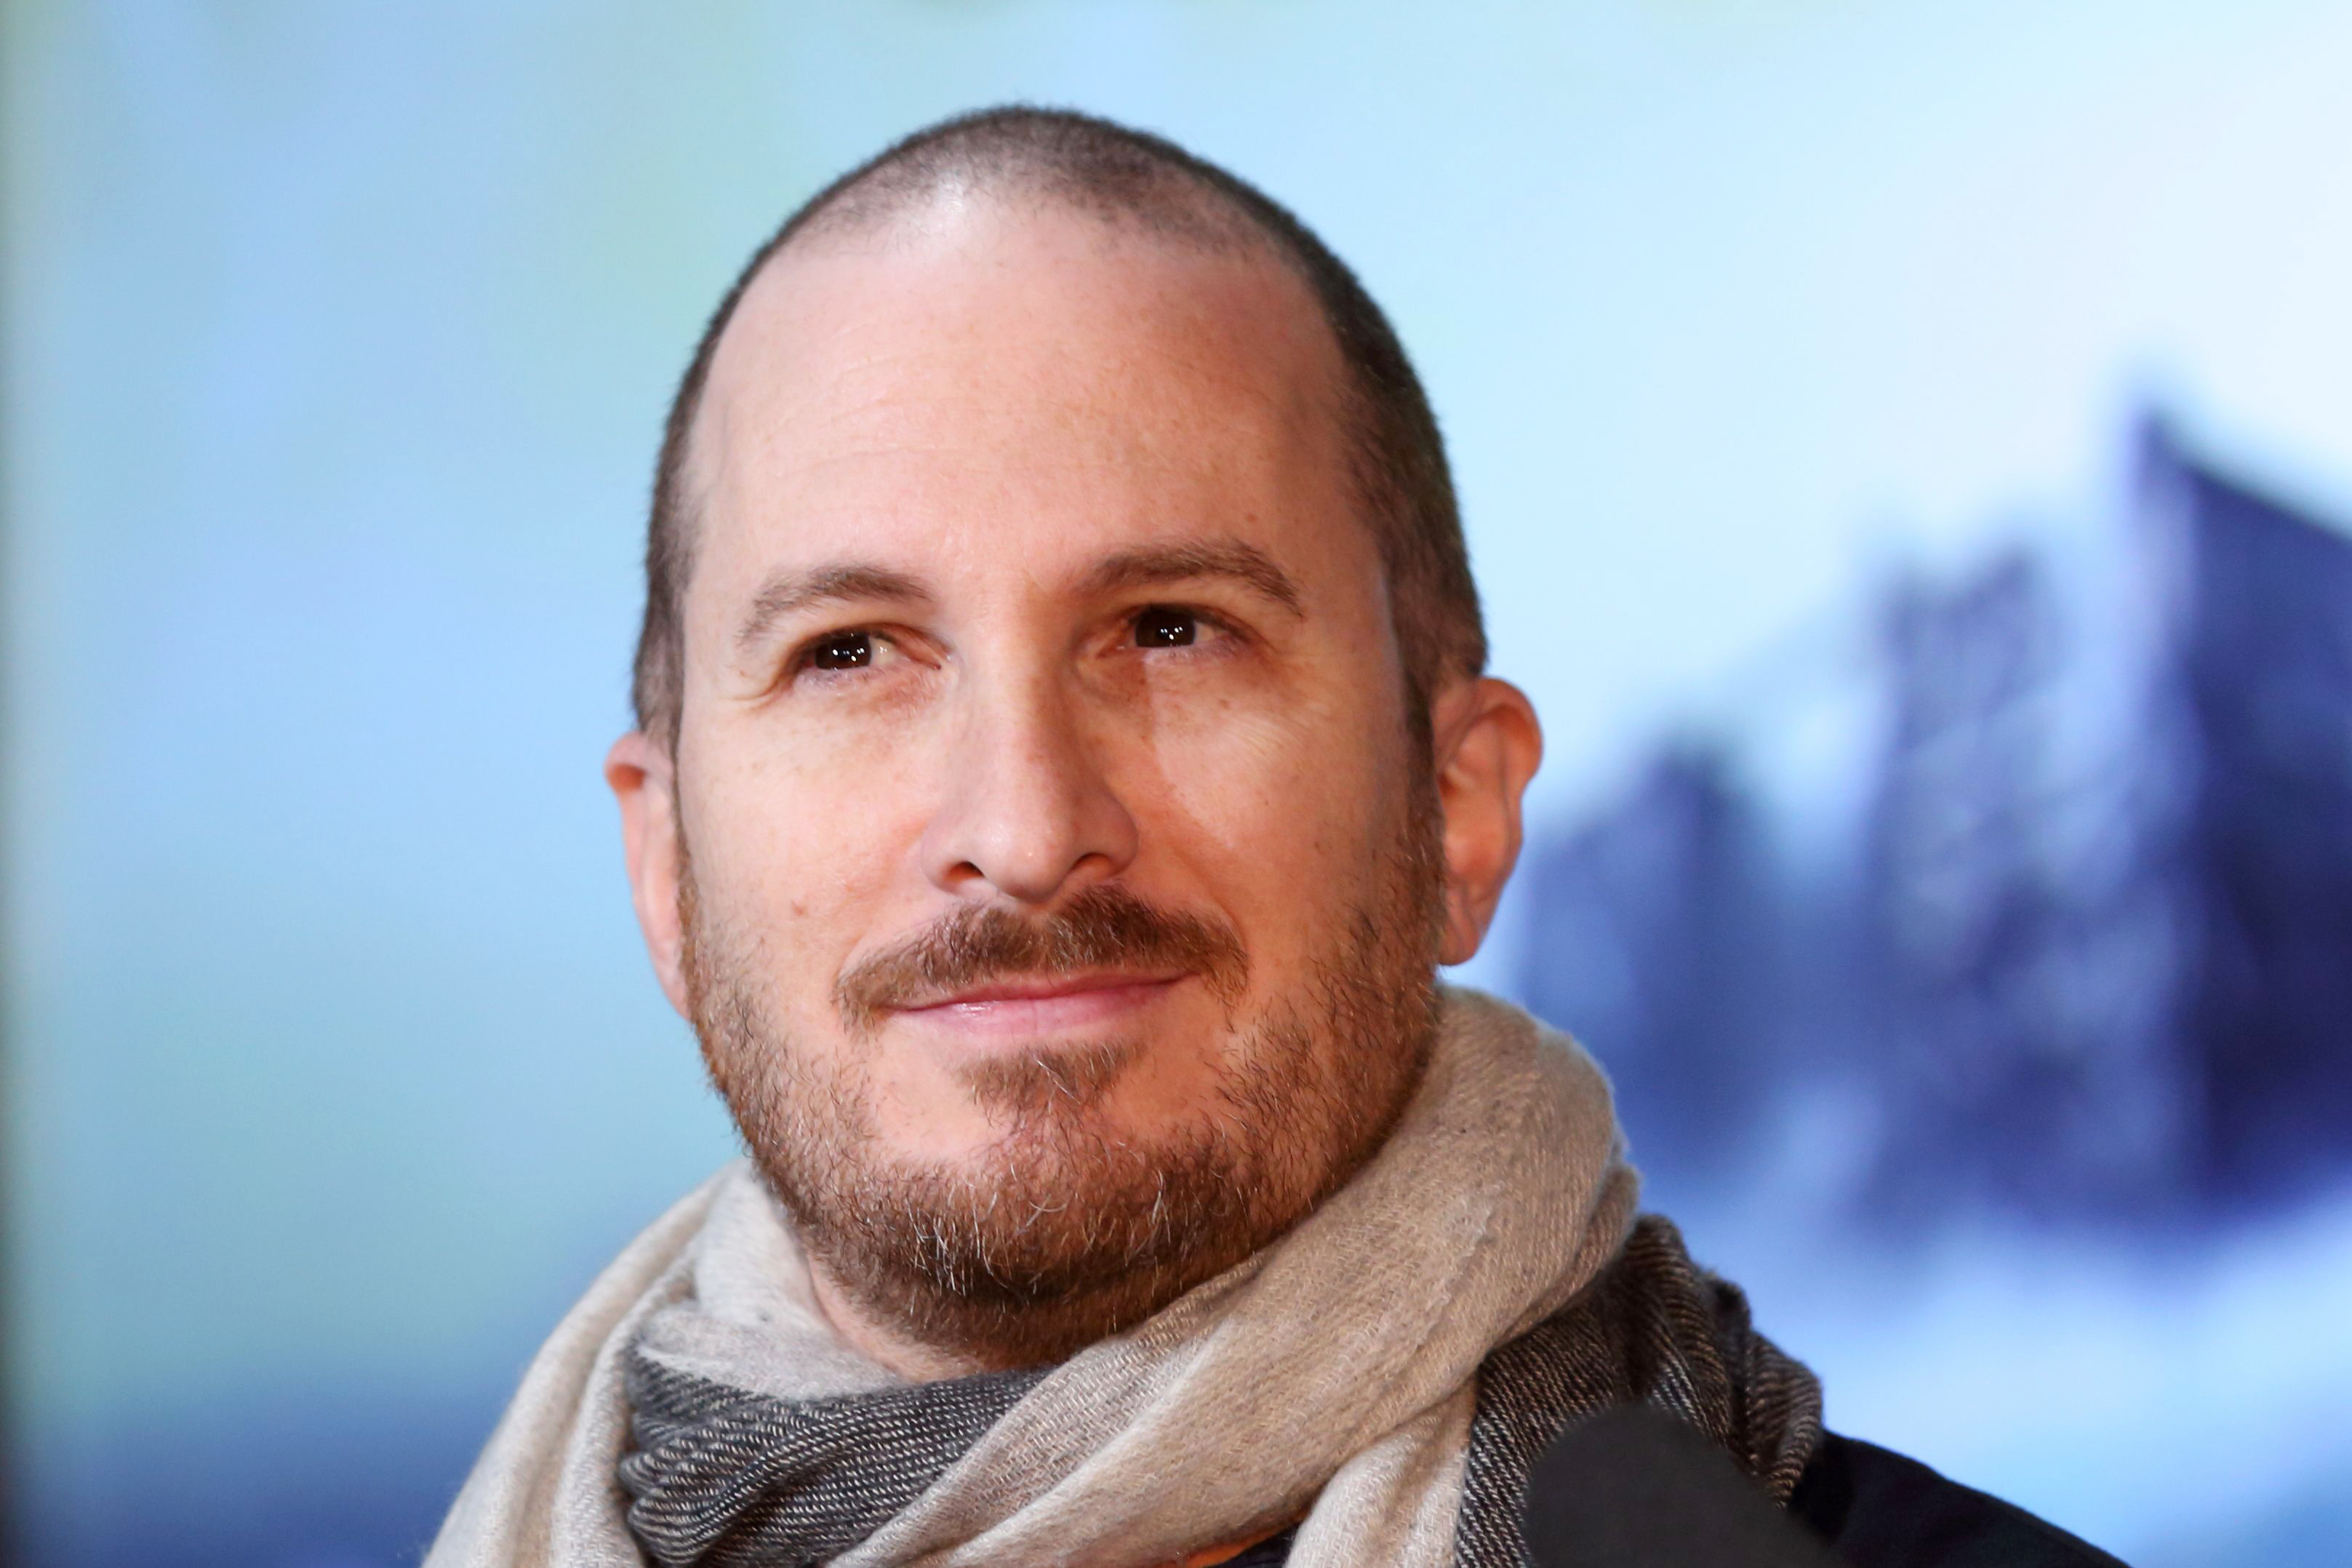 Darren Aronofsky Says People Can't Look at Him After They See 'Mother!'